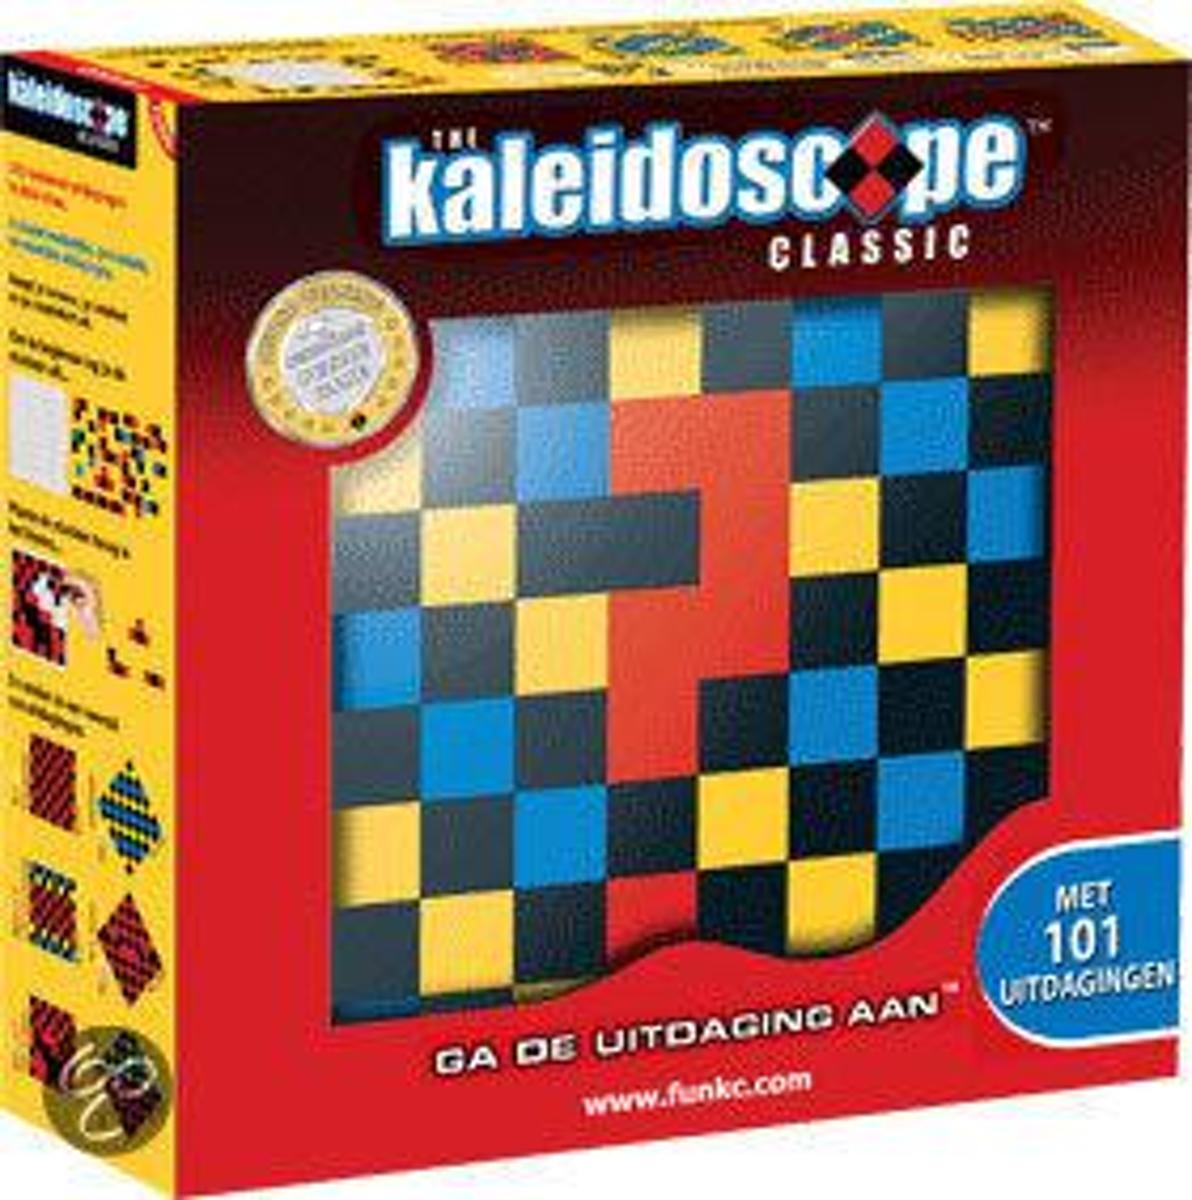 The Kaleidoscope Classic